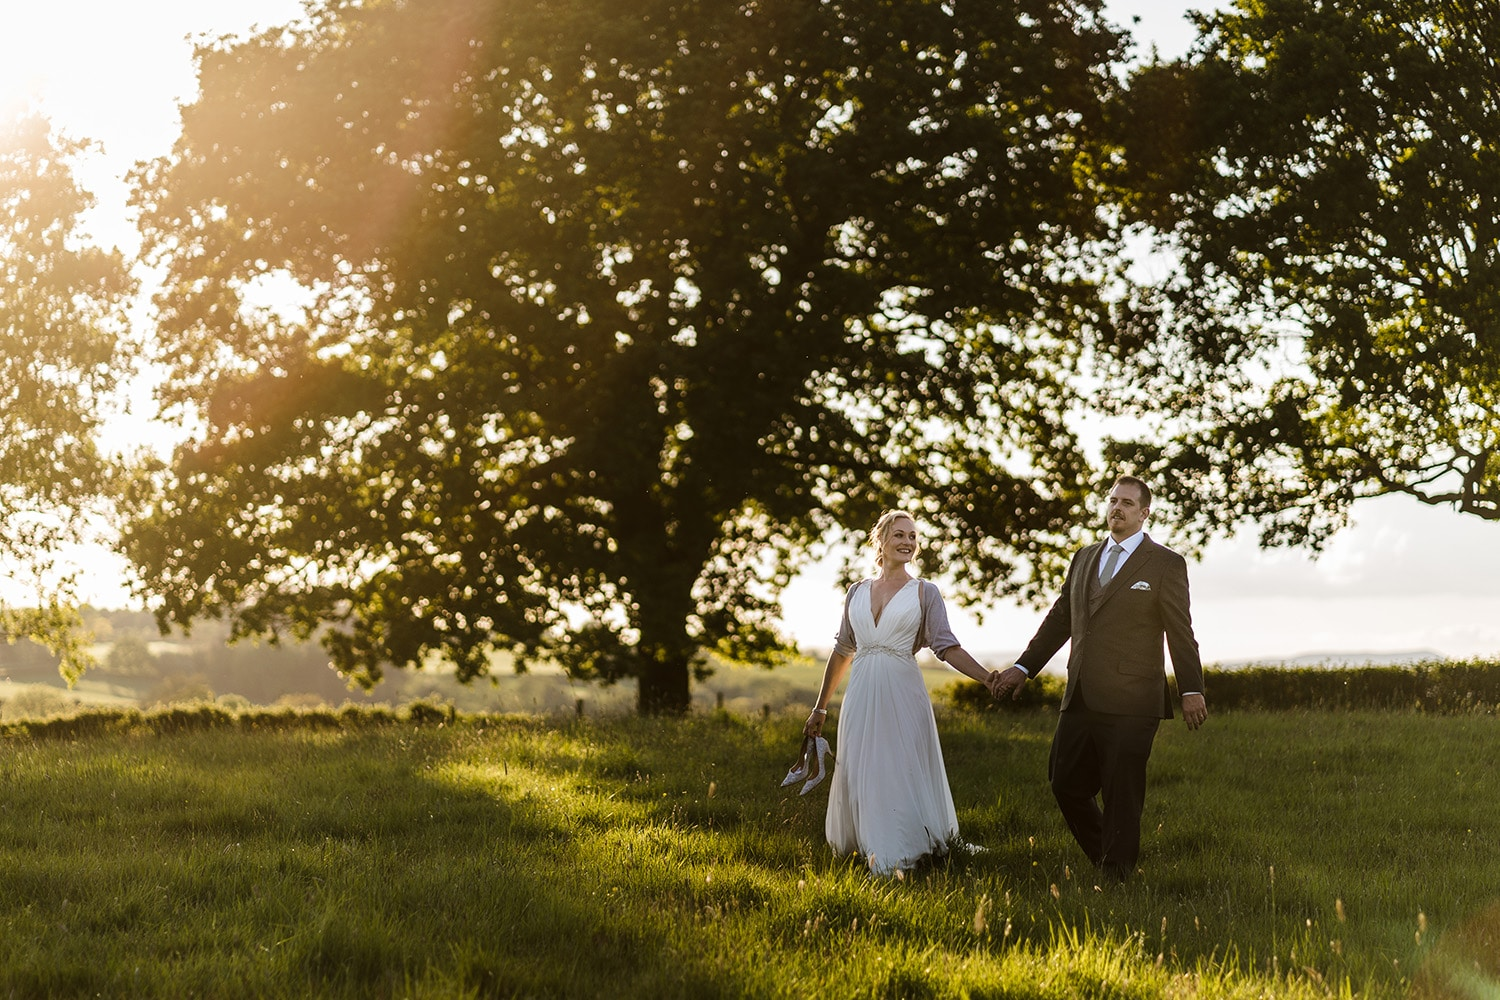 South Wales Wedding Photography Guide 01